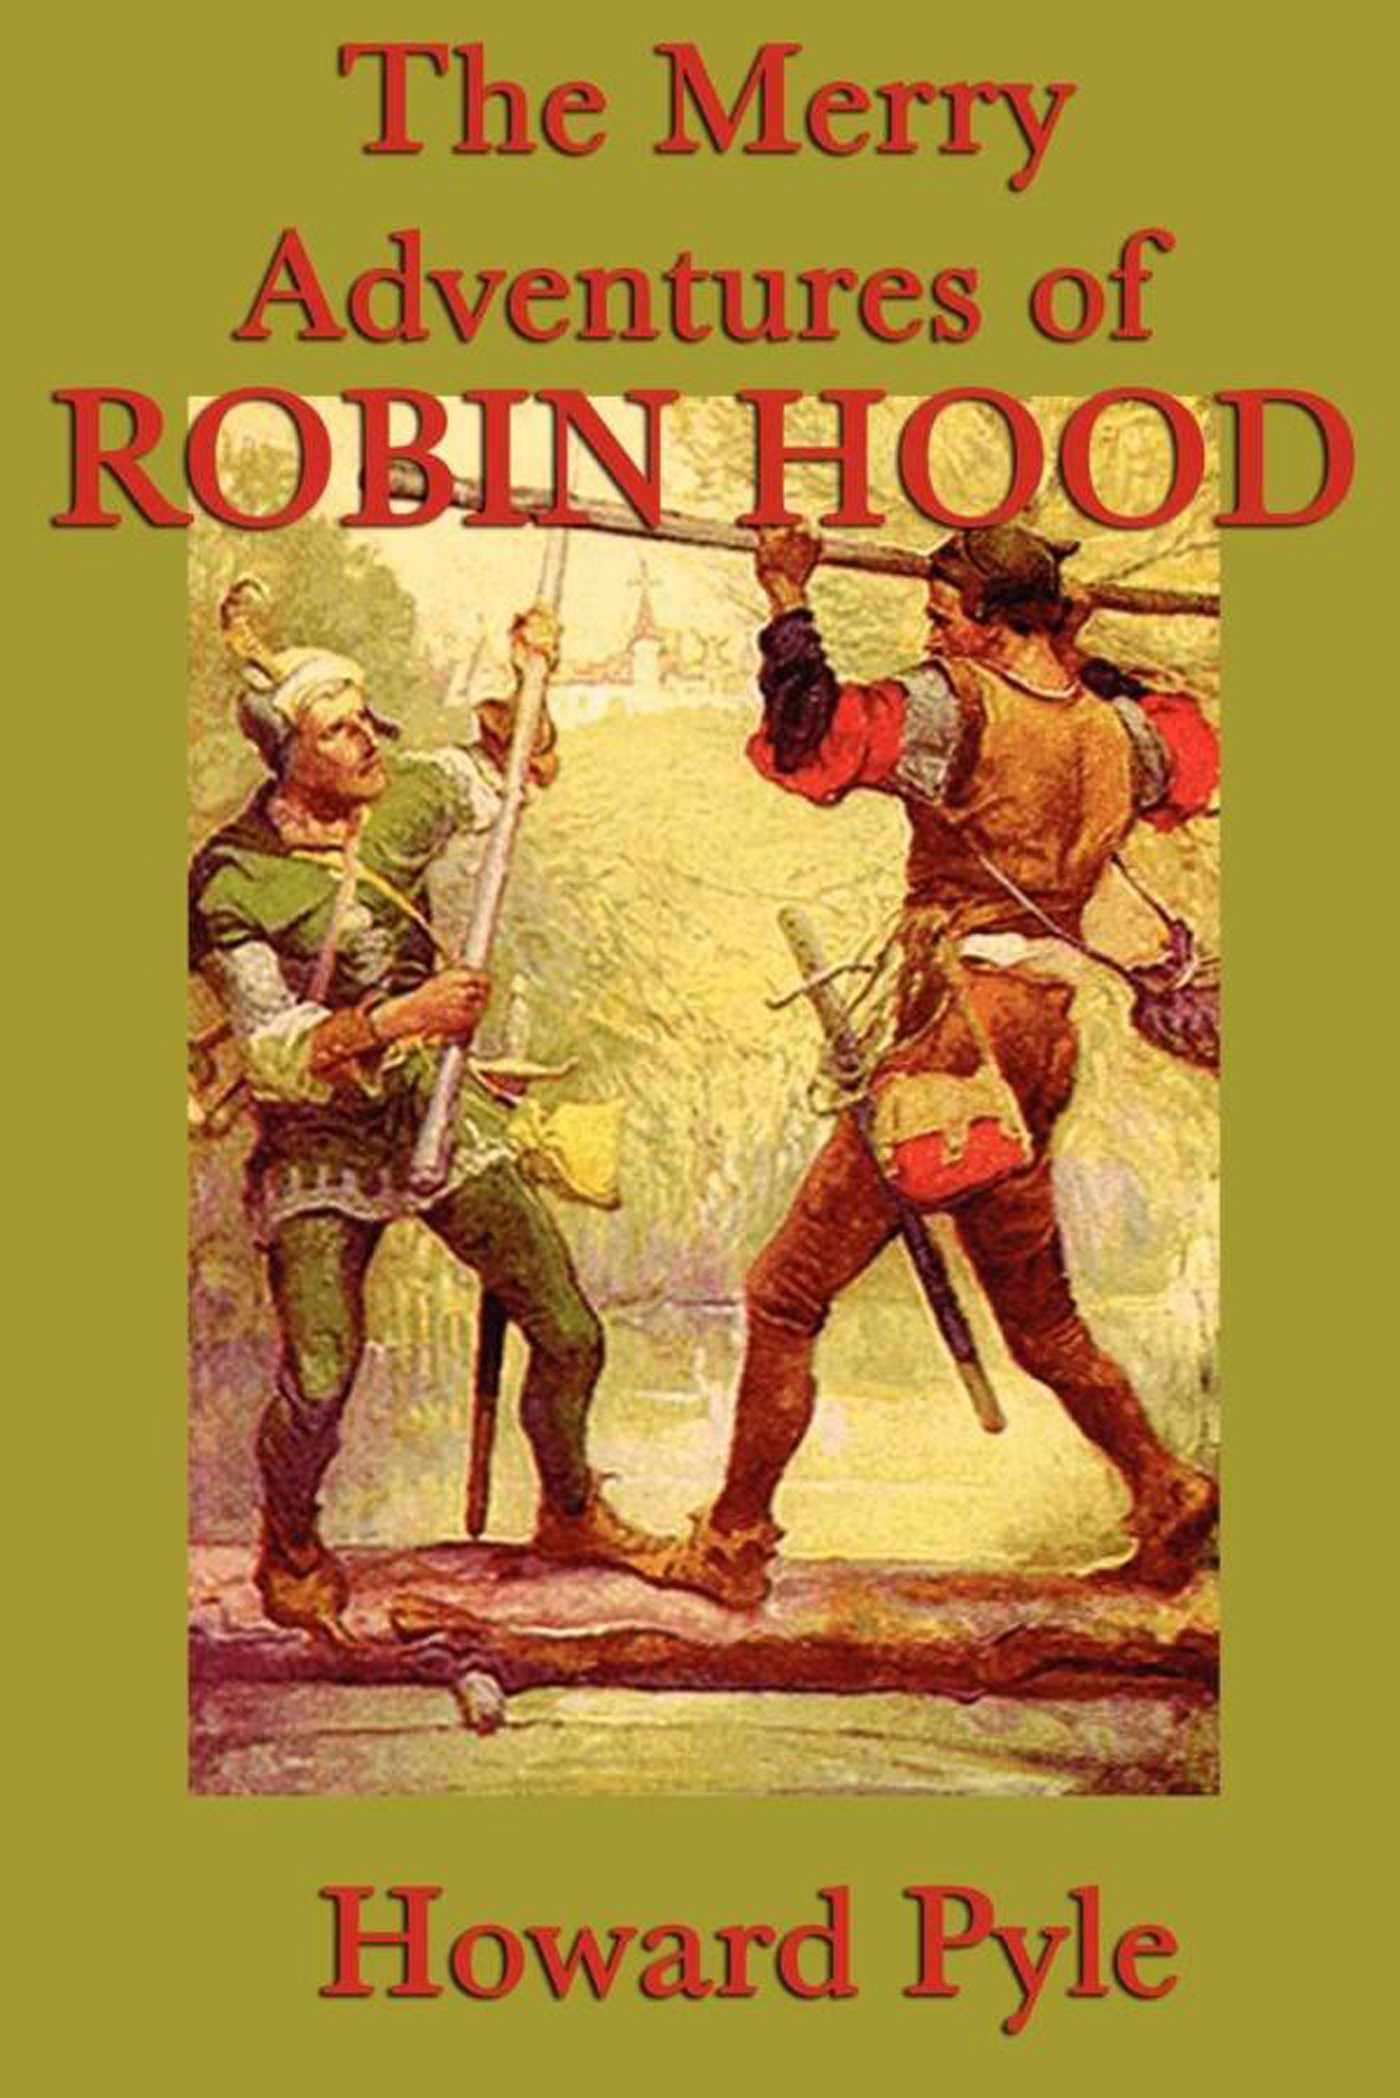 book report robin hood howard pyle The merry adventures of robin hood: howard pyle was born march almost entirely to the production of illustrations which appeared in periodicals and books.